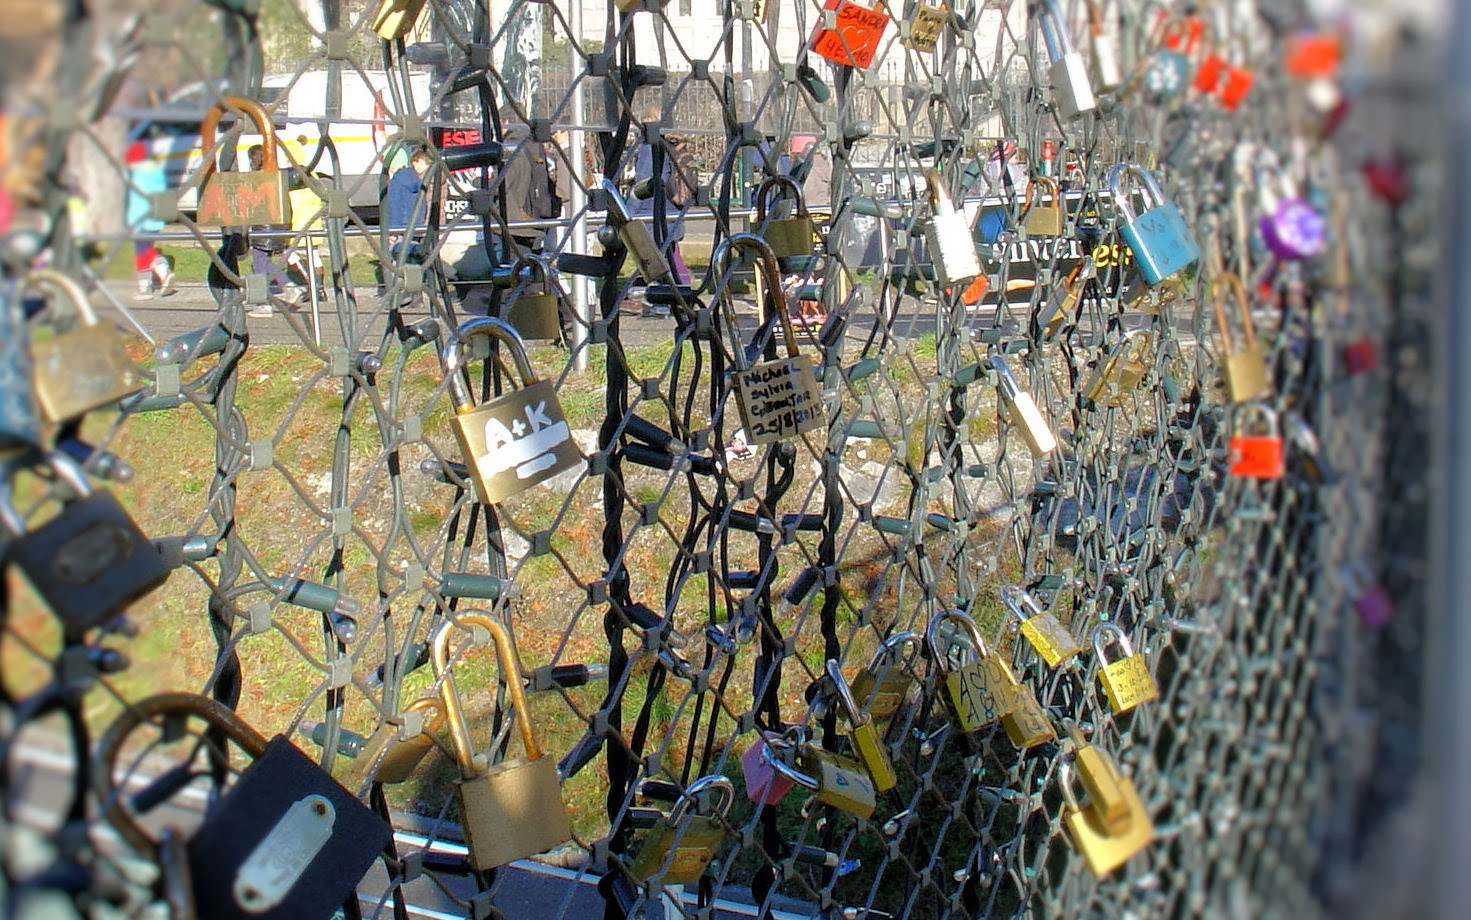 Locks of Love adorn the railings along the Makartsteg pedestrian bridge.